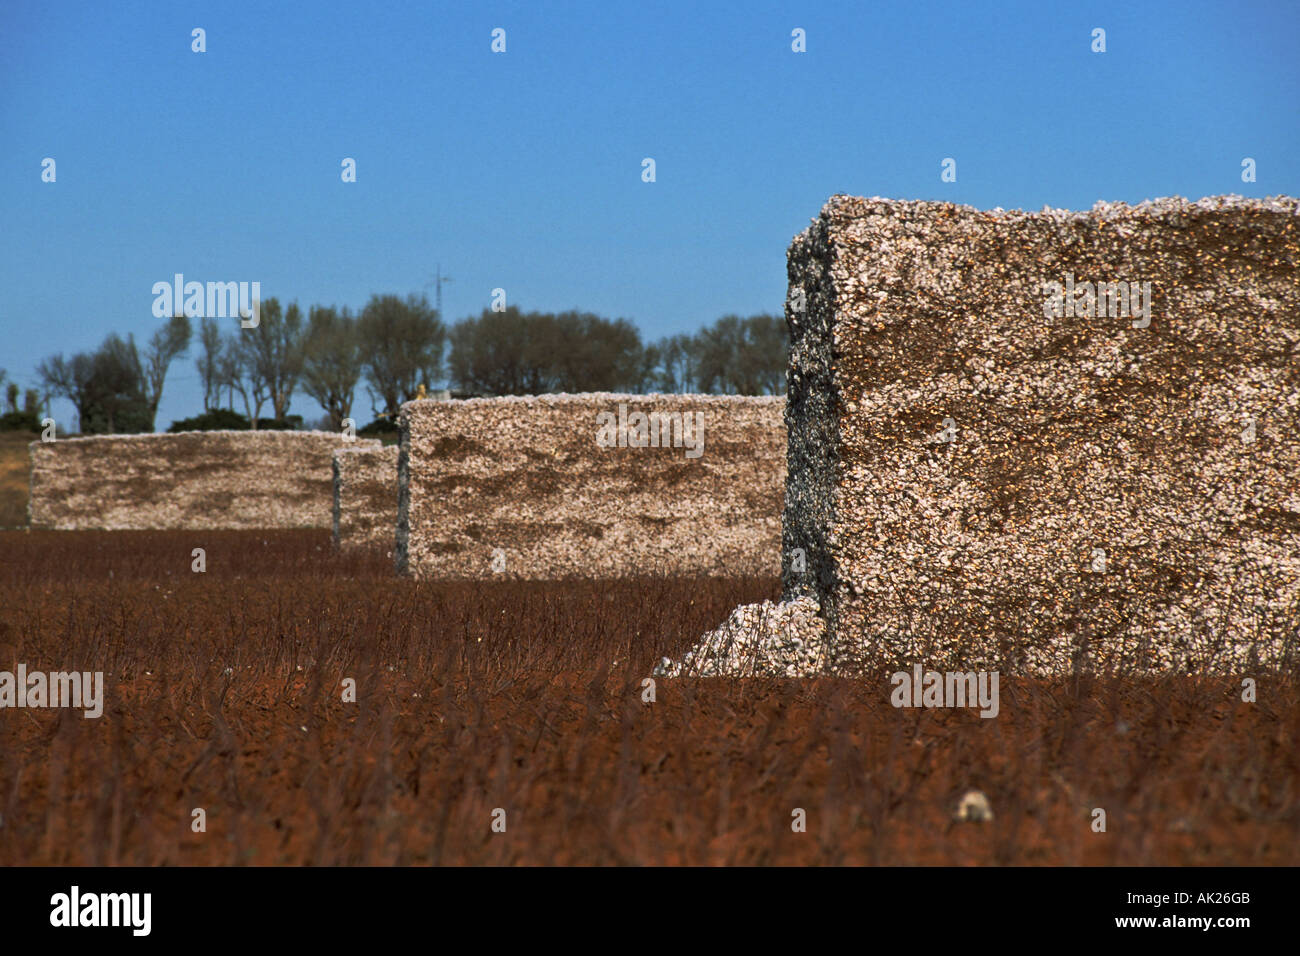 Bales of harvested cotton in field Needmore Texas USA genus Gossypium family Malvaceae - Stock Image